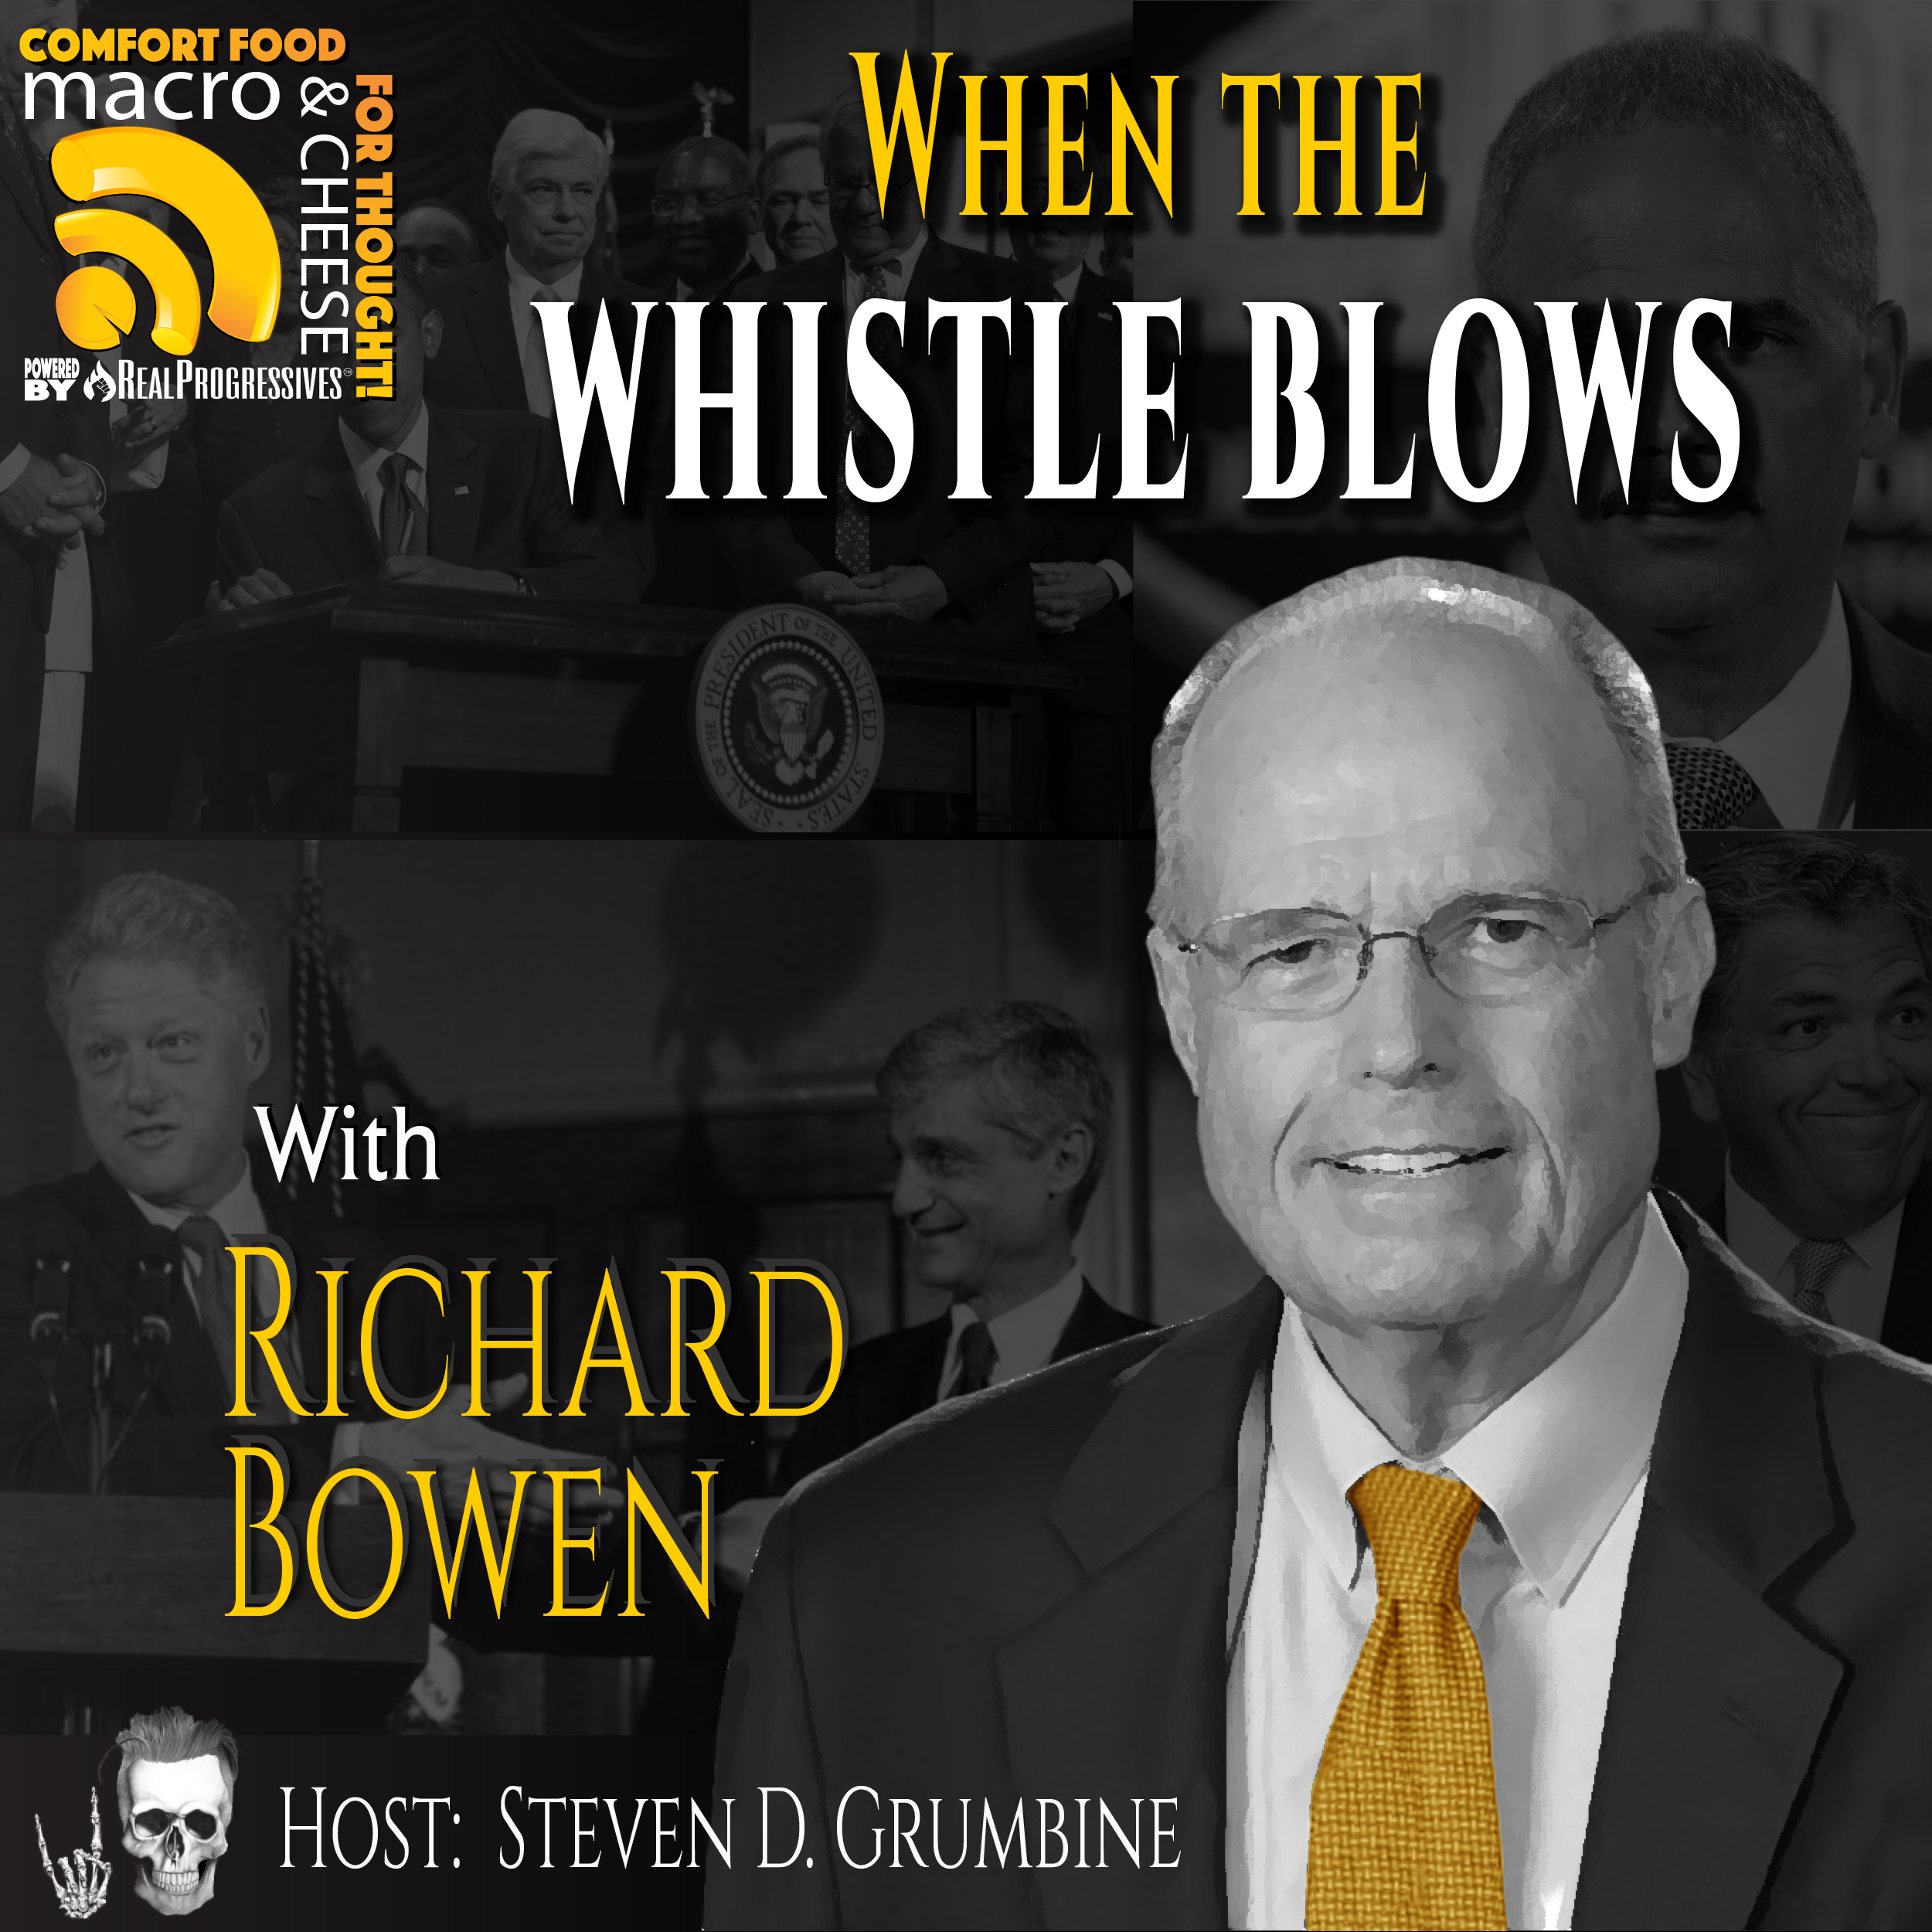 When the Whistle Blows with Richard Bowen